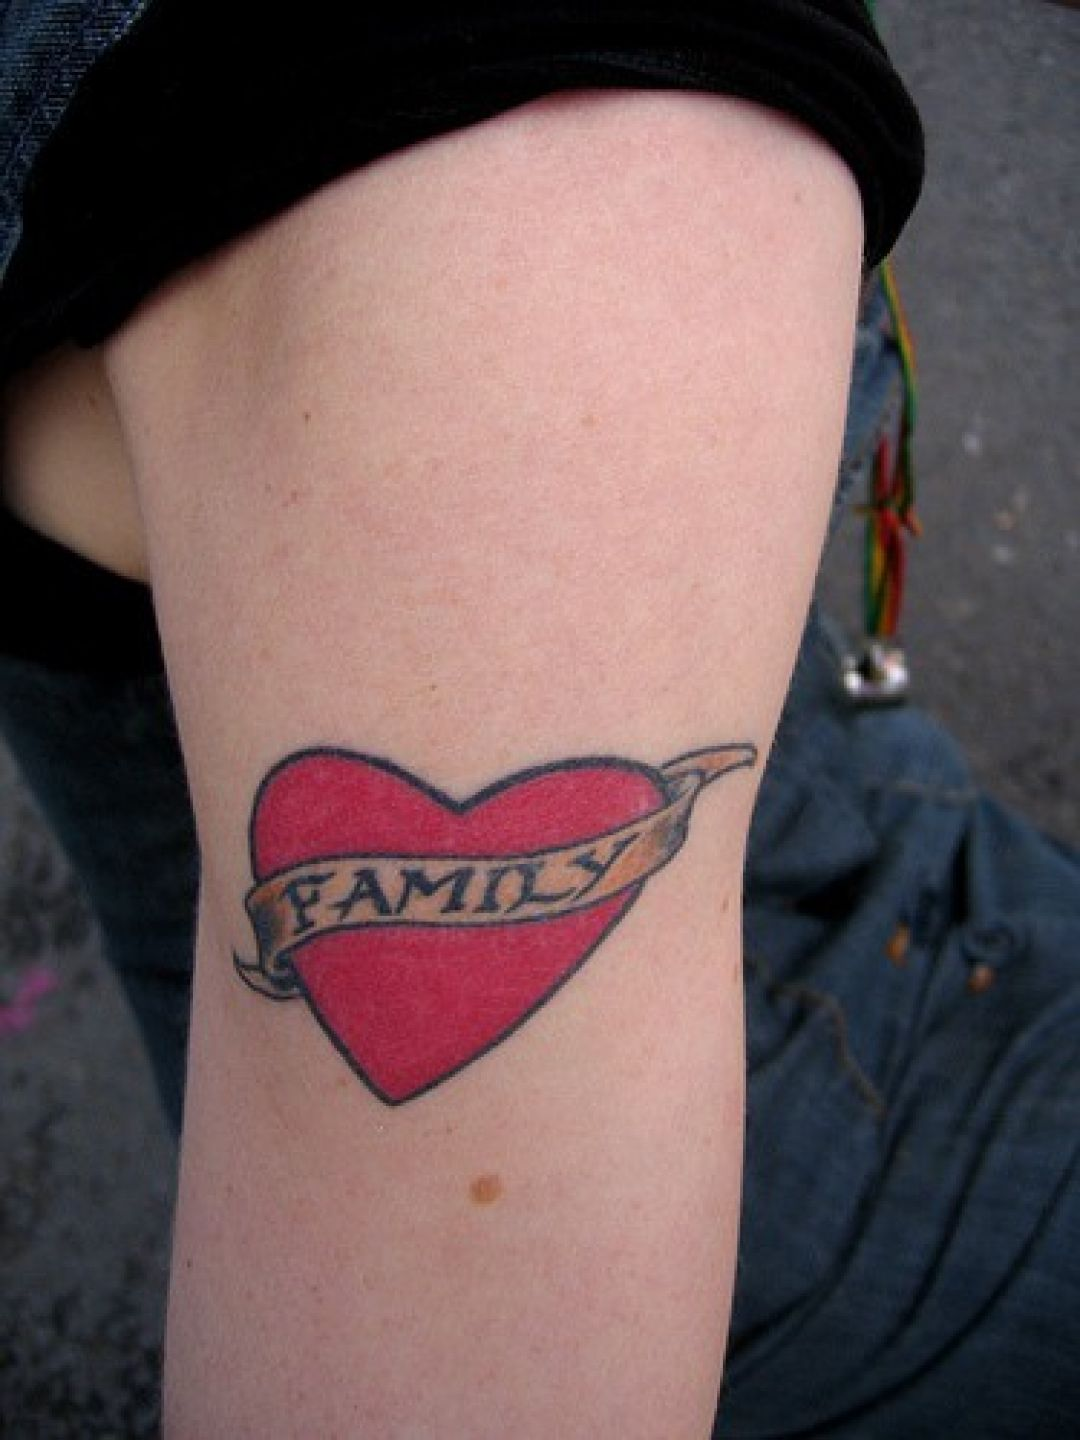 Family Heart Tattoos : family, heart, tattoos, ✓[100+], Family, Heart, Tattoo, Design, (1080x1440), (2021)